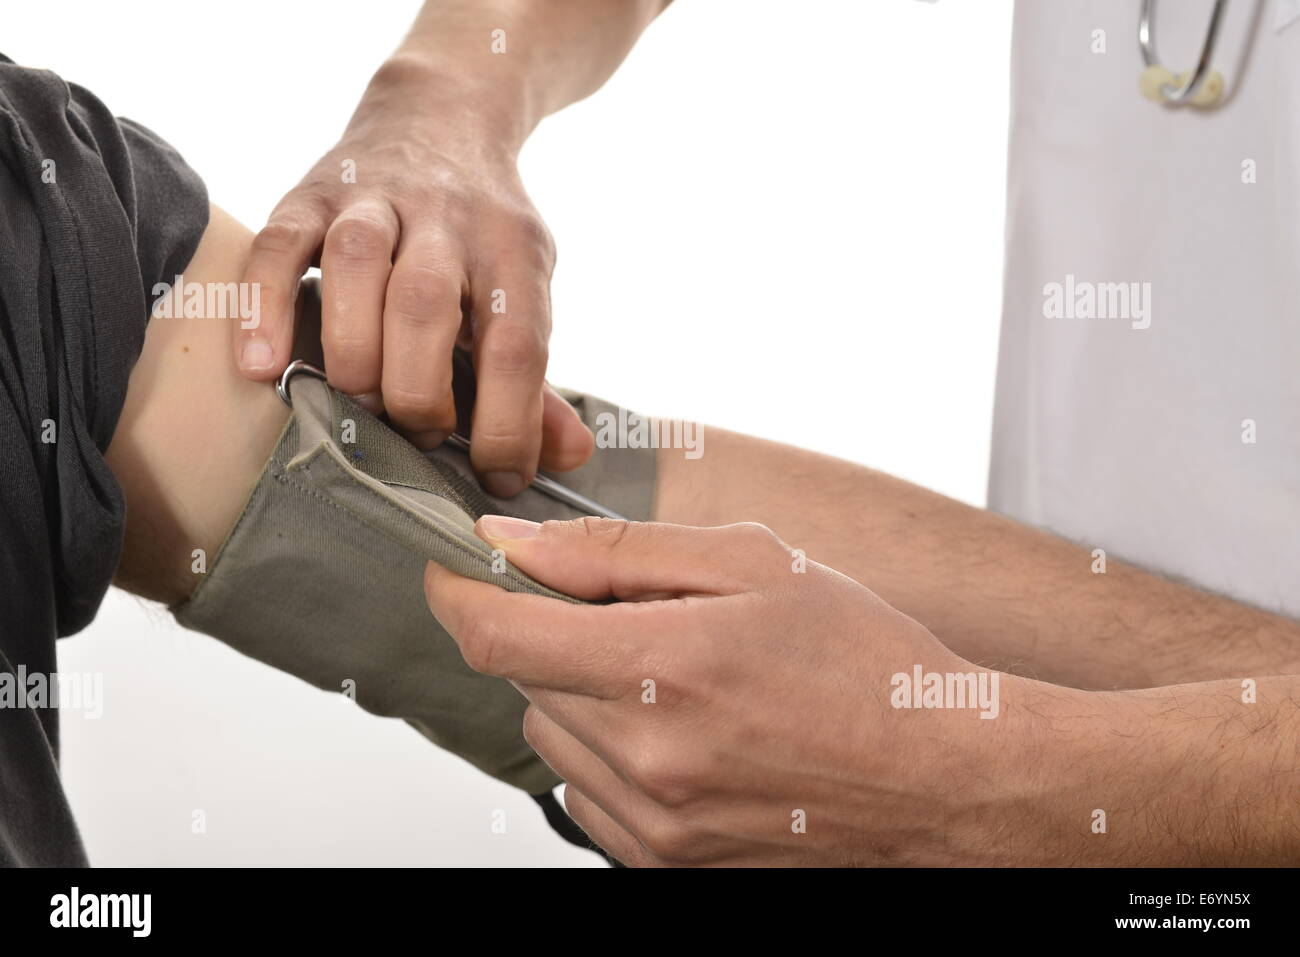 Nurse preparing blood pressure check - Stock Image